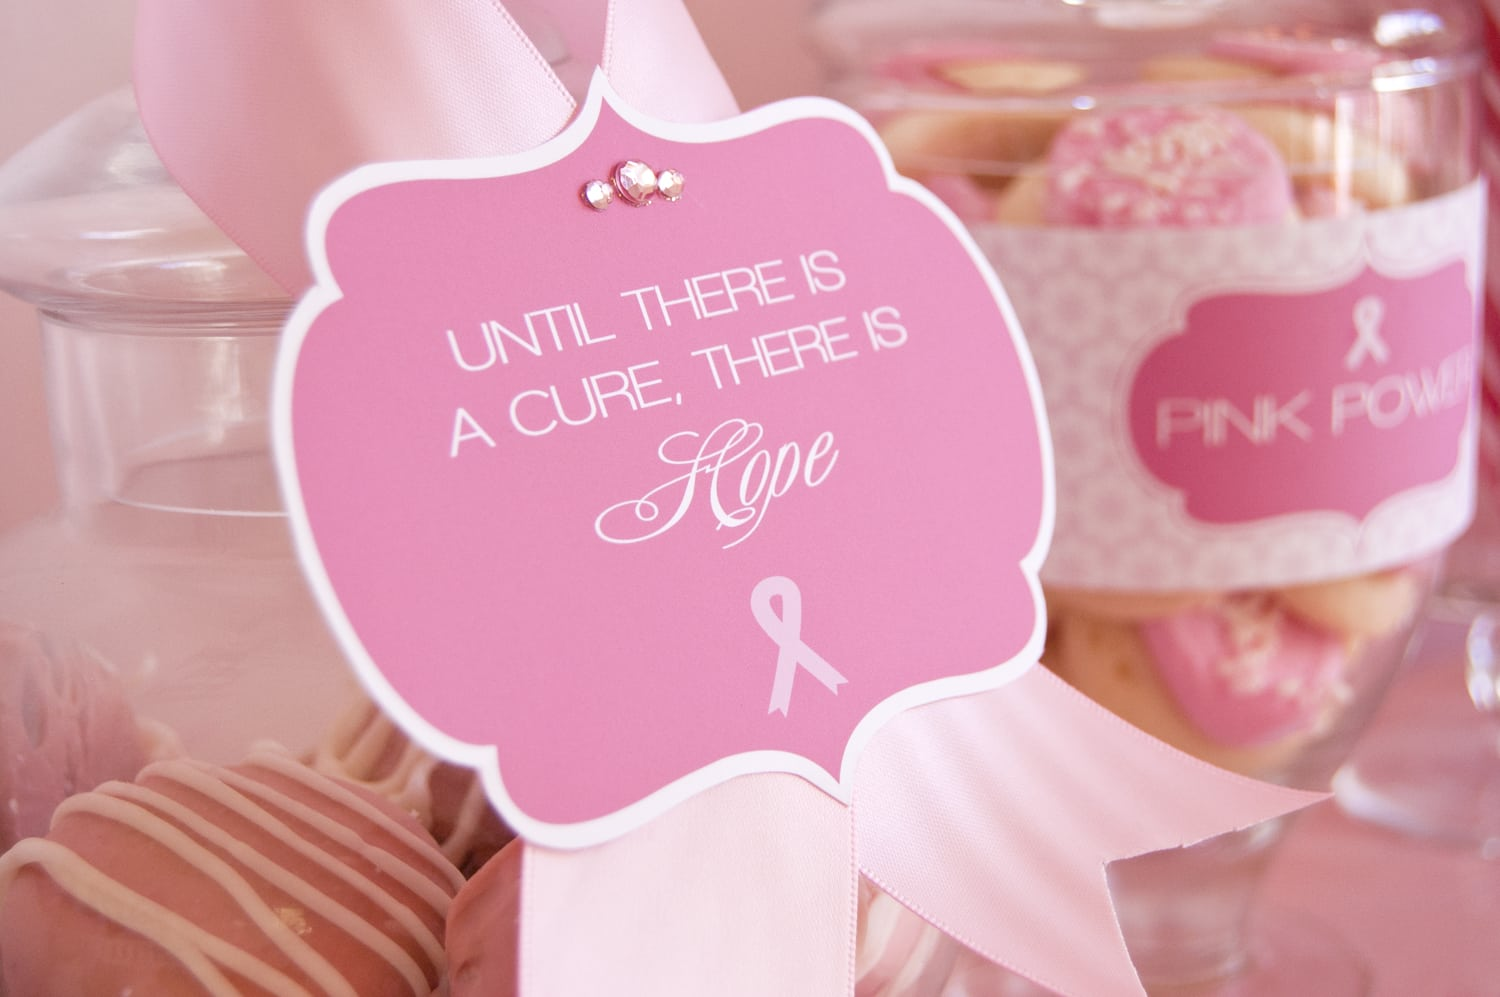 78+ Images About Breast Cancer Awareness On Pinterest